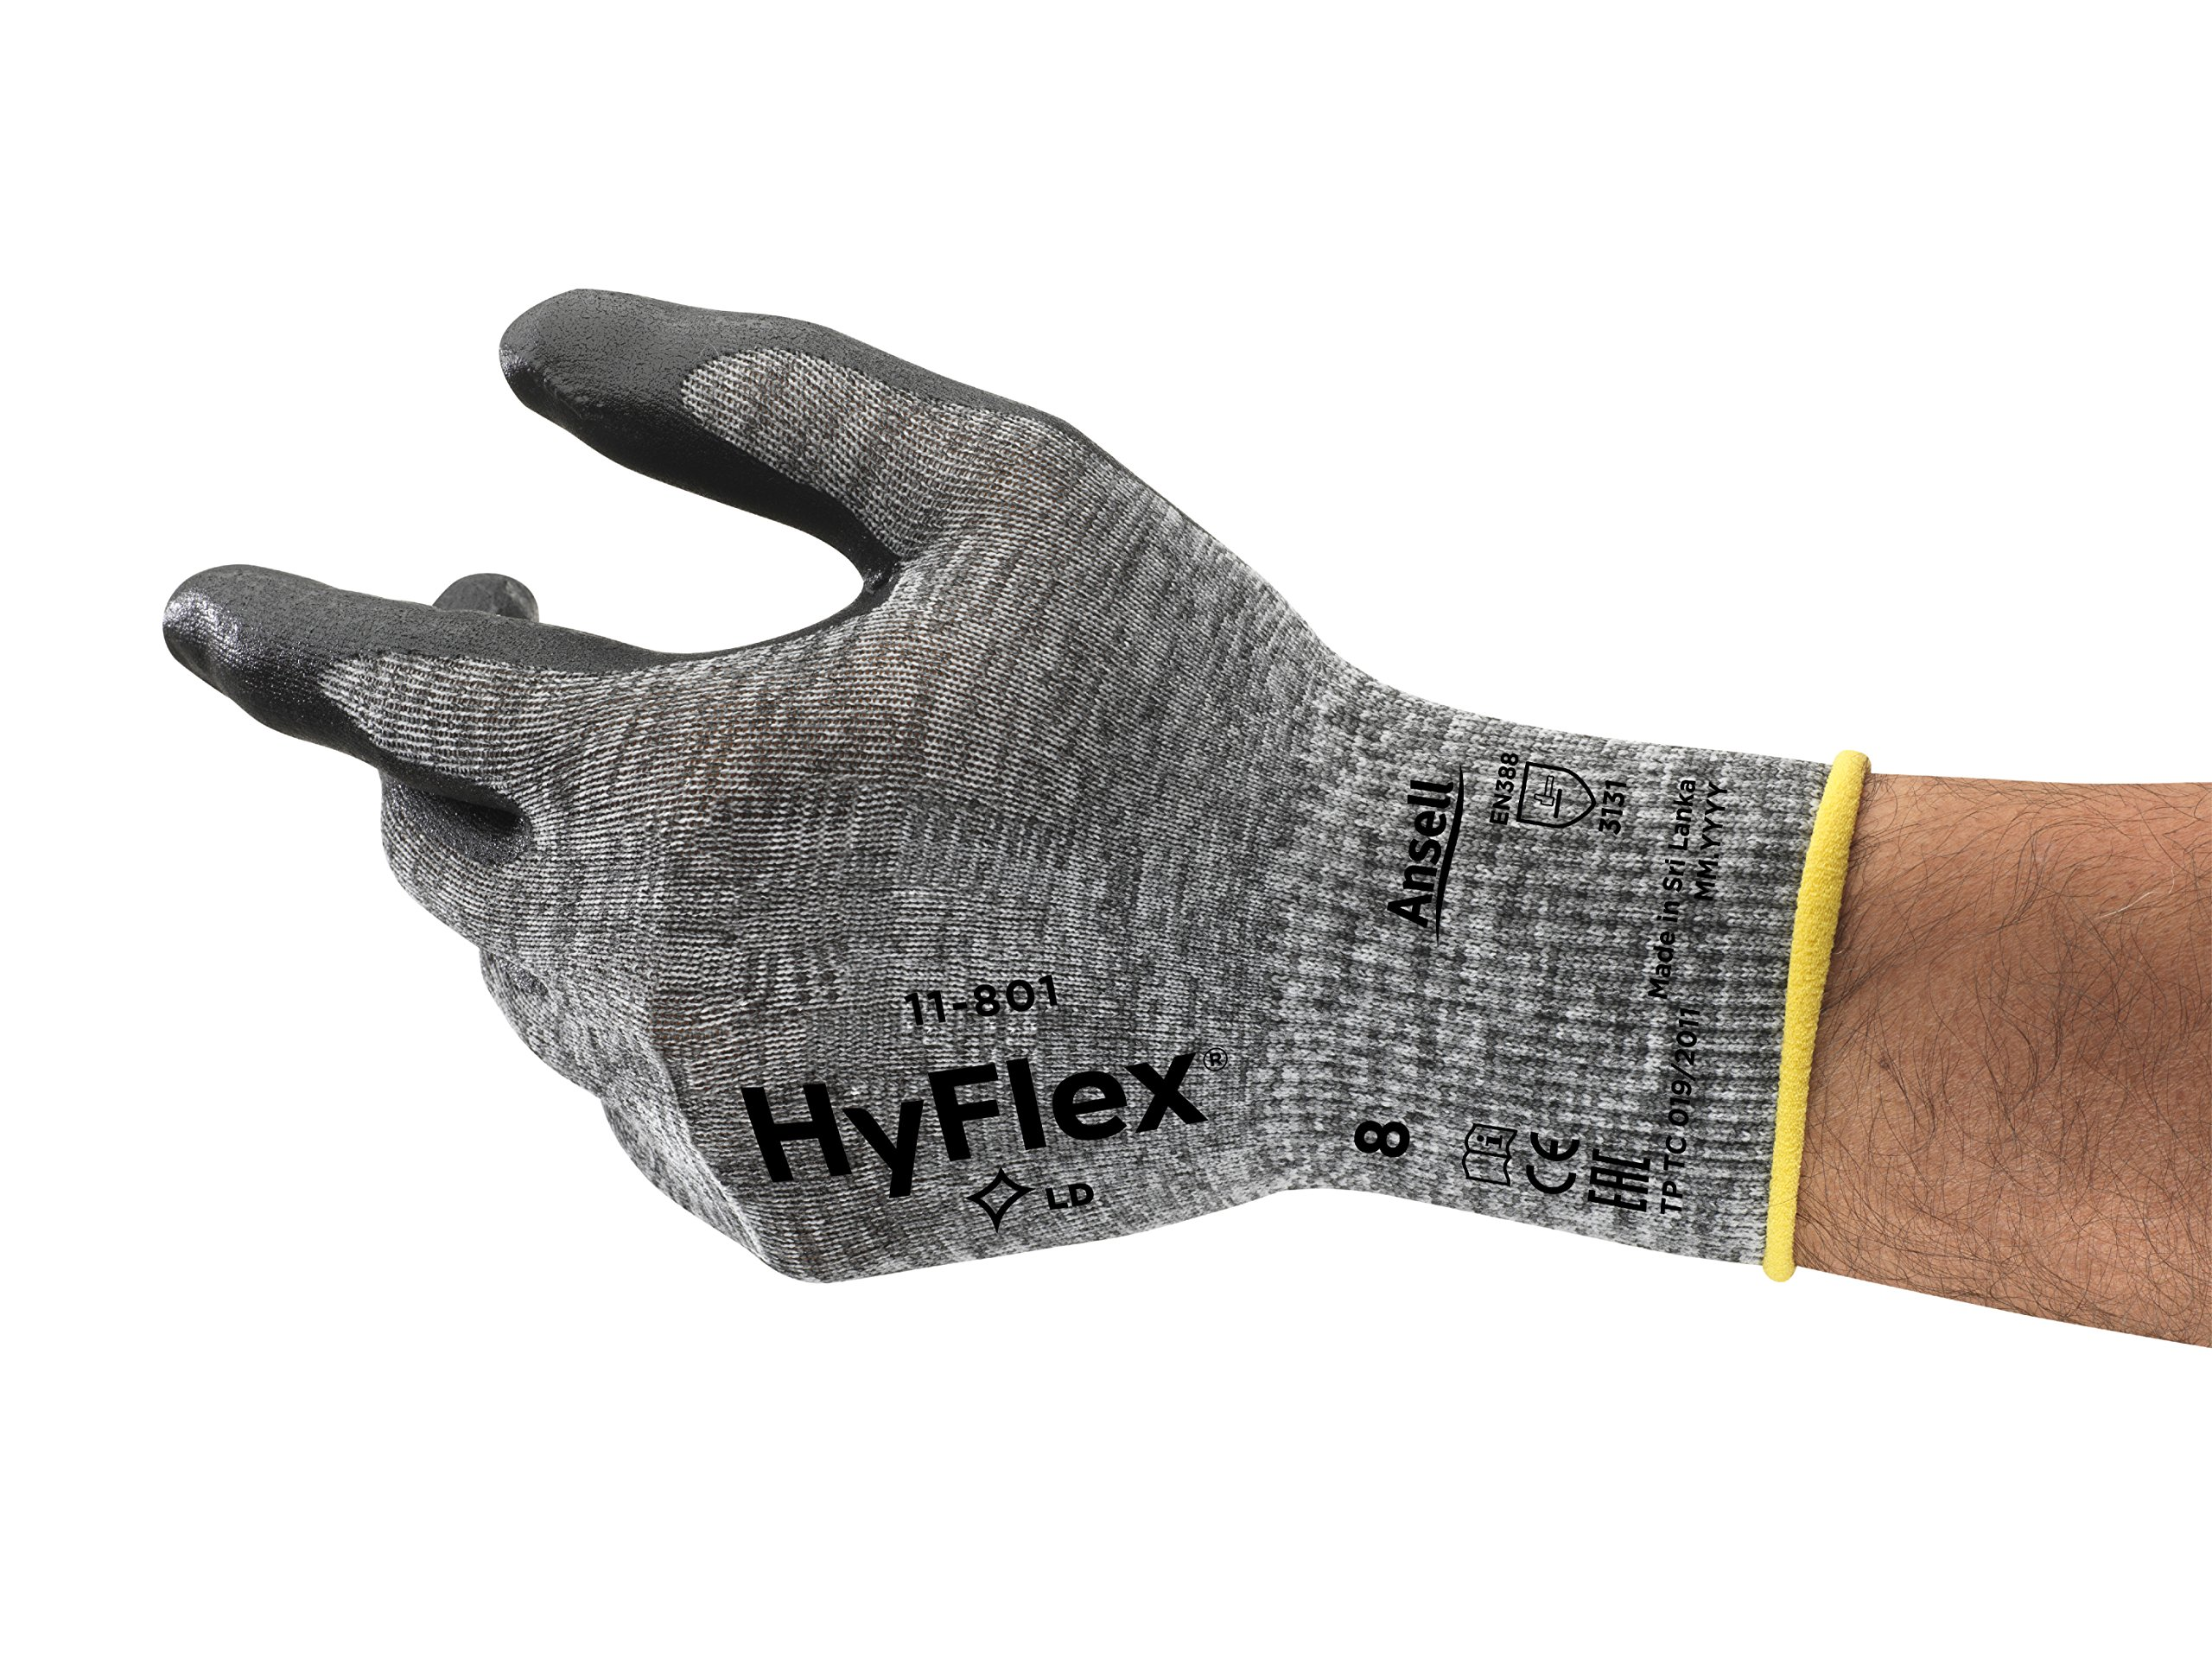 Ansell HyFlex 11-801 Nylon Glove, Black Foam Nitrile Coating, Knit Wrist Cuff, Large, Size 9 (Pack of 12)